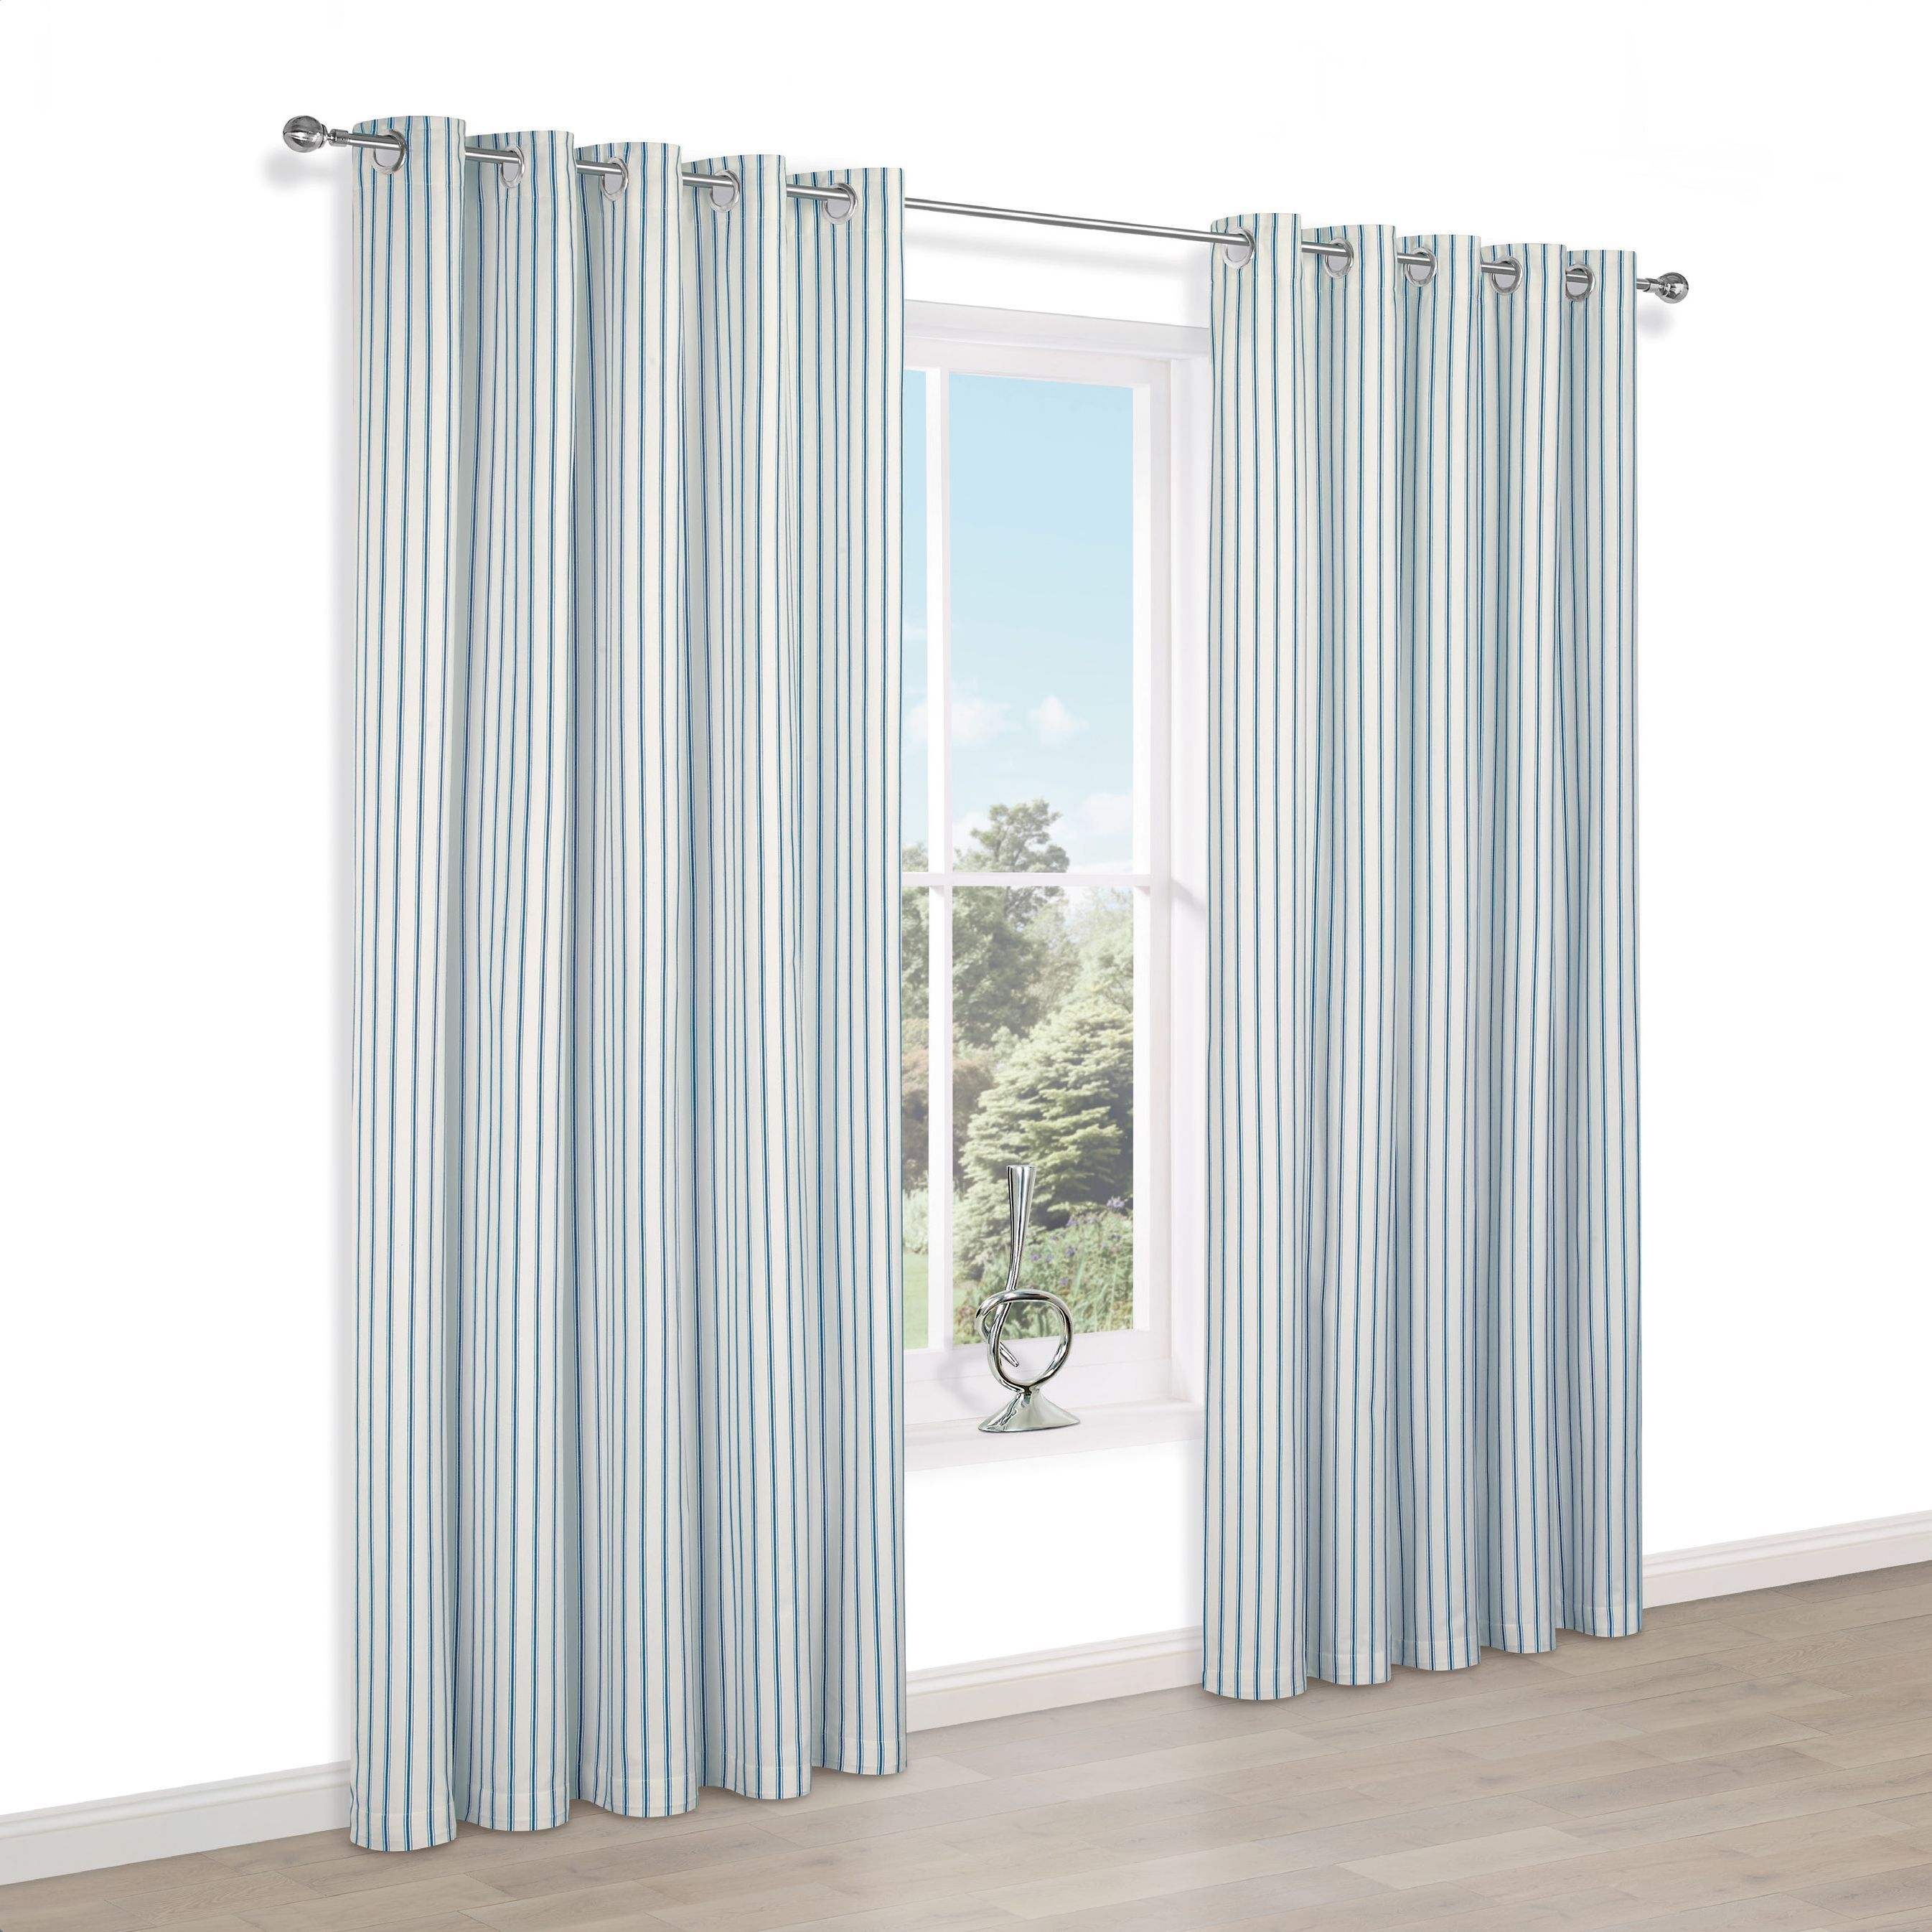 cm b w curtain christina stripe white prd eyelet bq at shower blue q l curtains diy lined departments